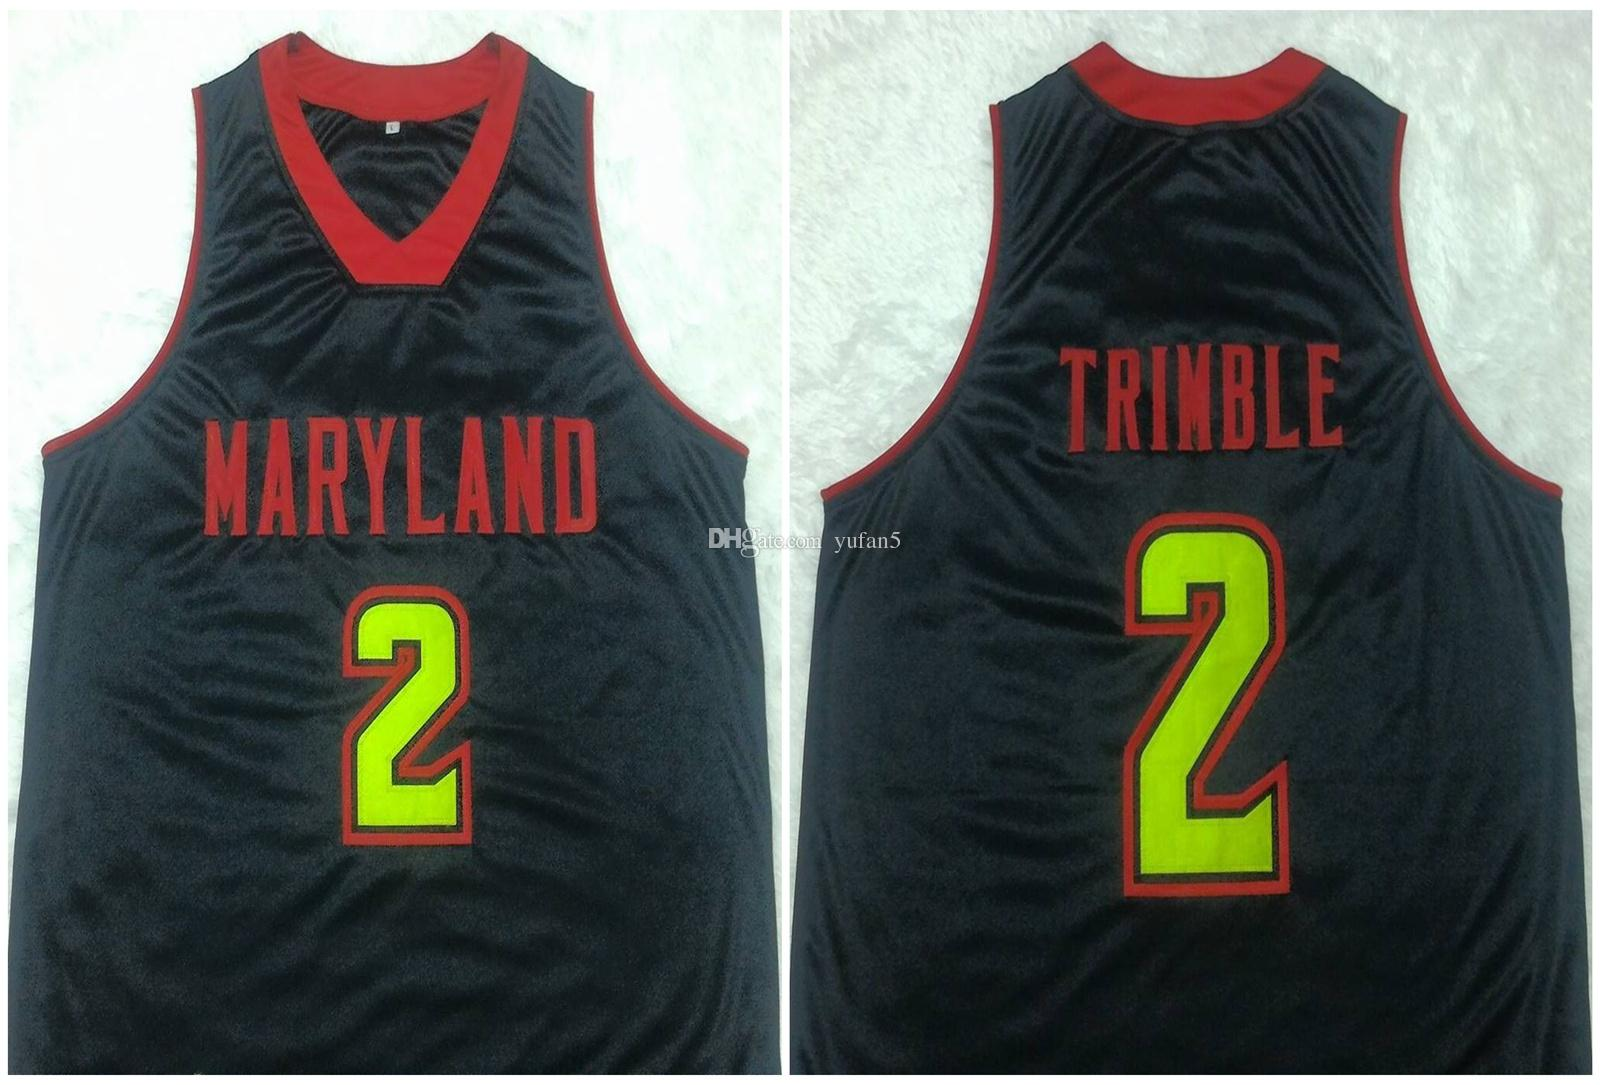 d2d63a08d 2019 Melo Trimble  2 Maryland Terrapins College Retro Basketball Jersey  Mens Stitched Custom Any Number Name Jerseys From Yufan5